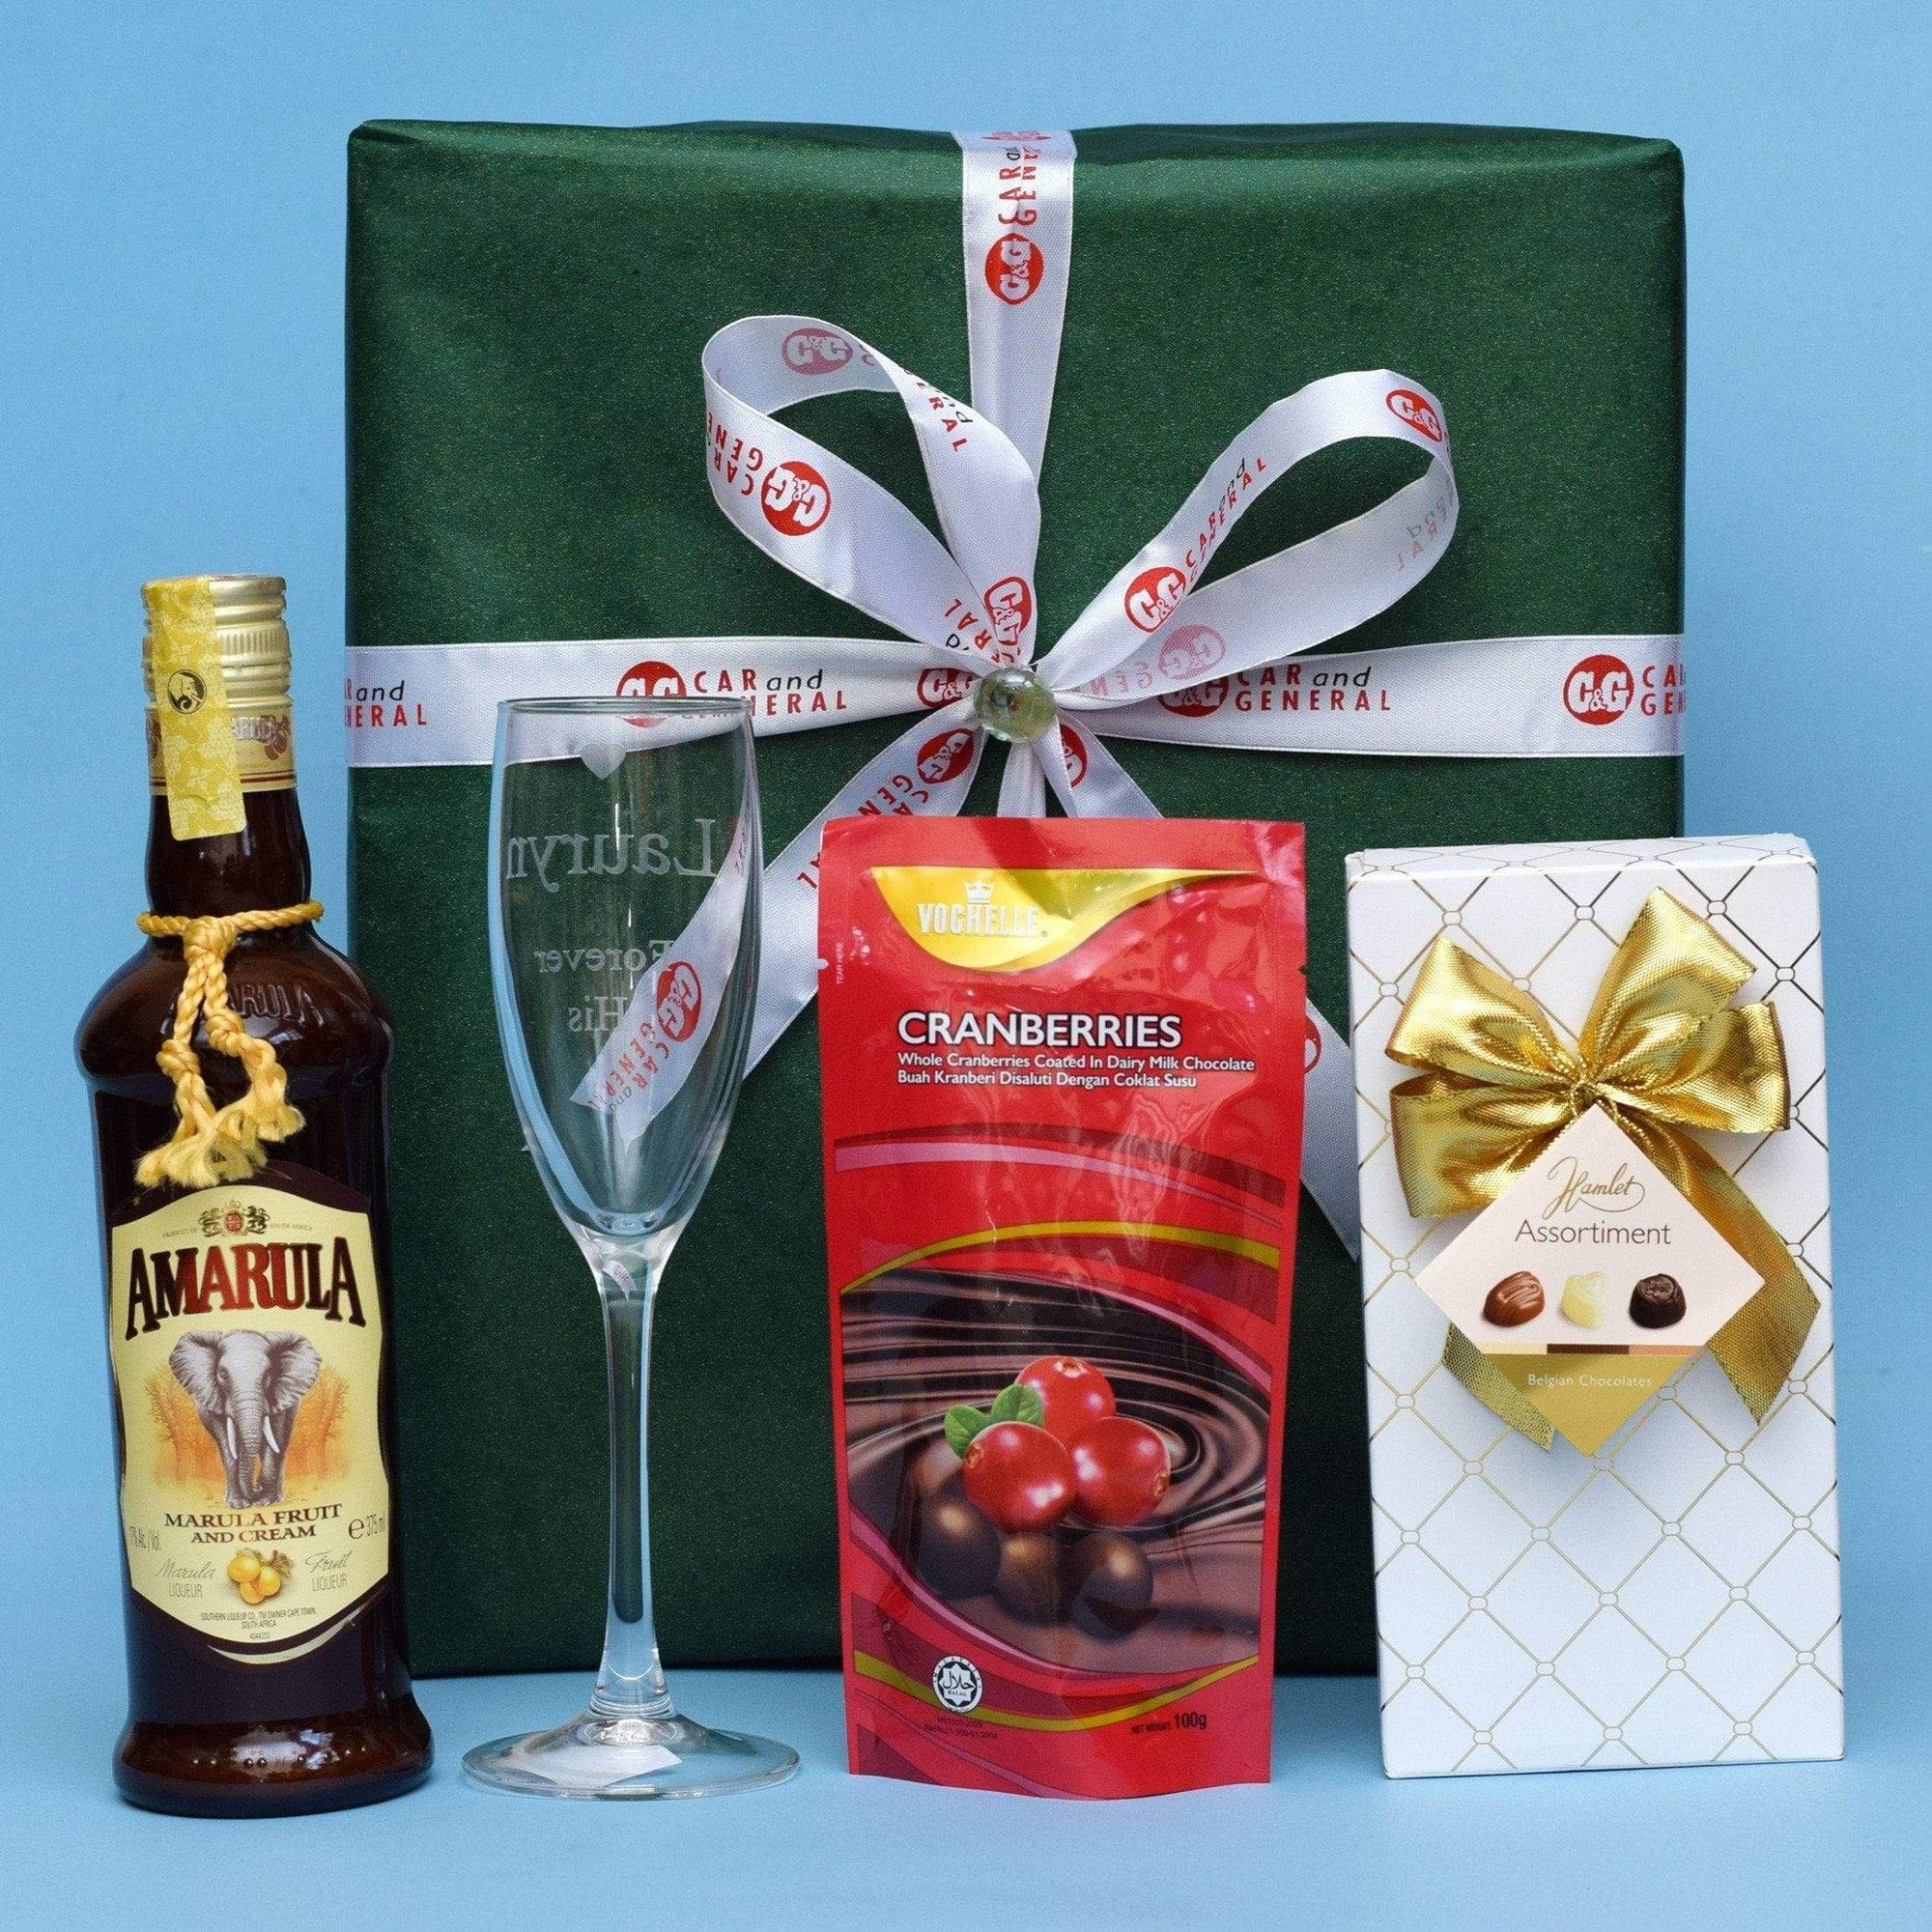 Lady Hampers Mini Amarula Gift Hamper